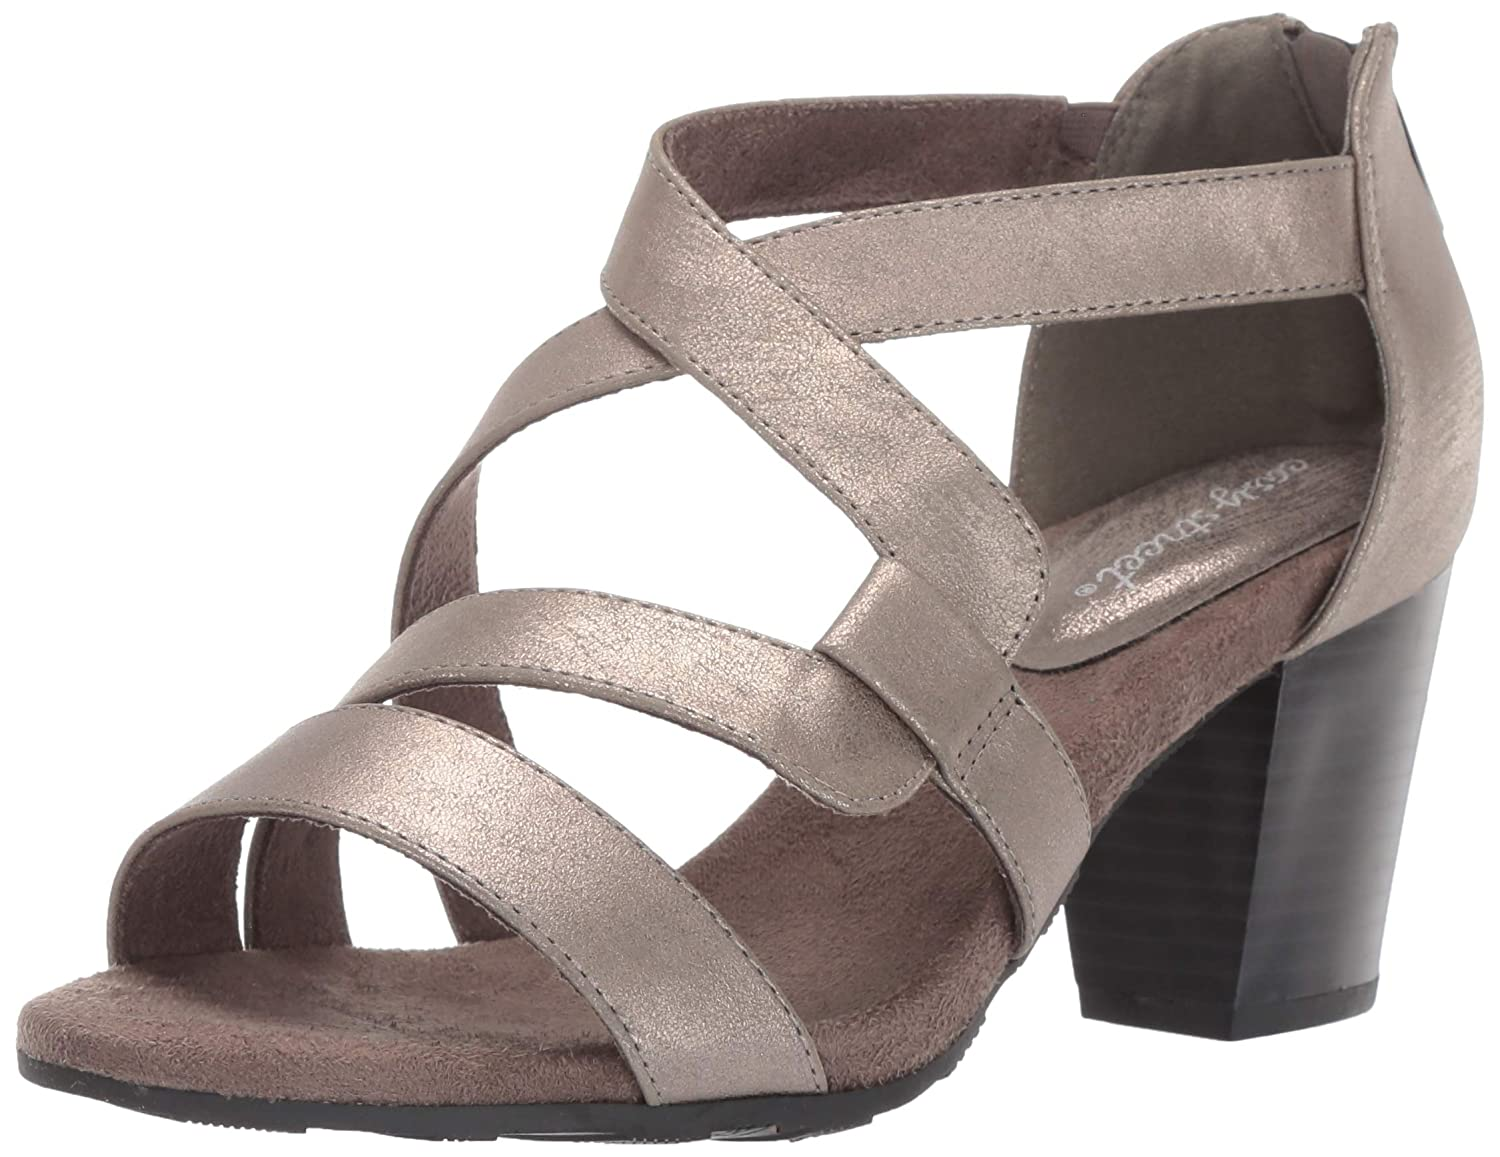 Pewter Metallic Easy Street Womens Amuse Dress Casual Sandal with Back Zipper Heeled Sandal